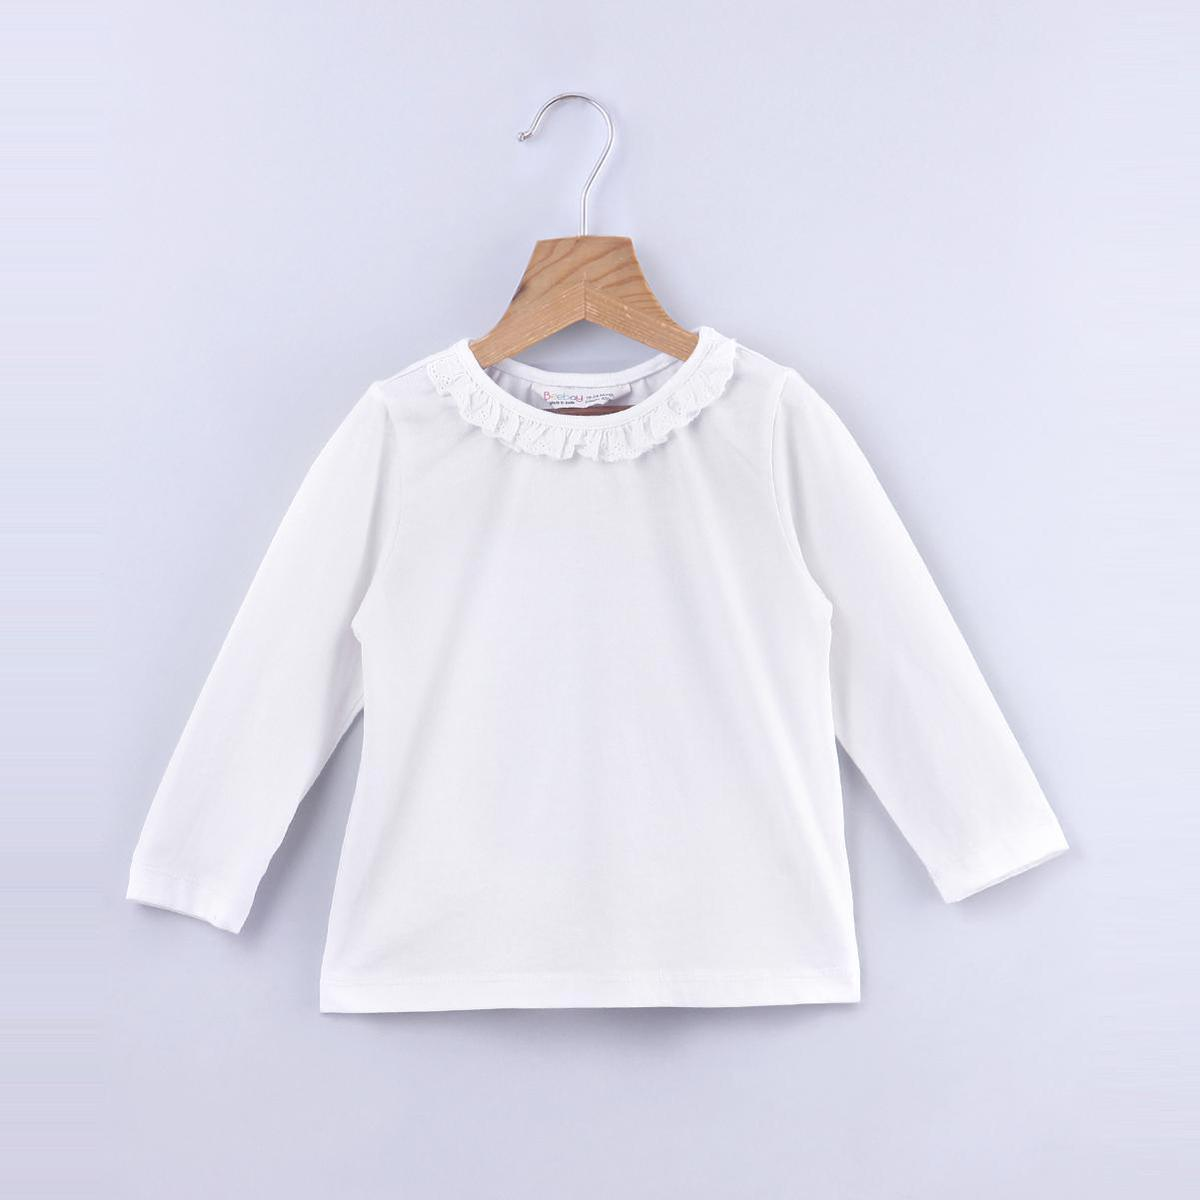 Beebay - Off White Colored Lace Frill Neck Cotton Top For Infants Girls